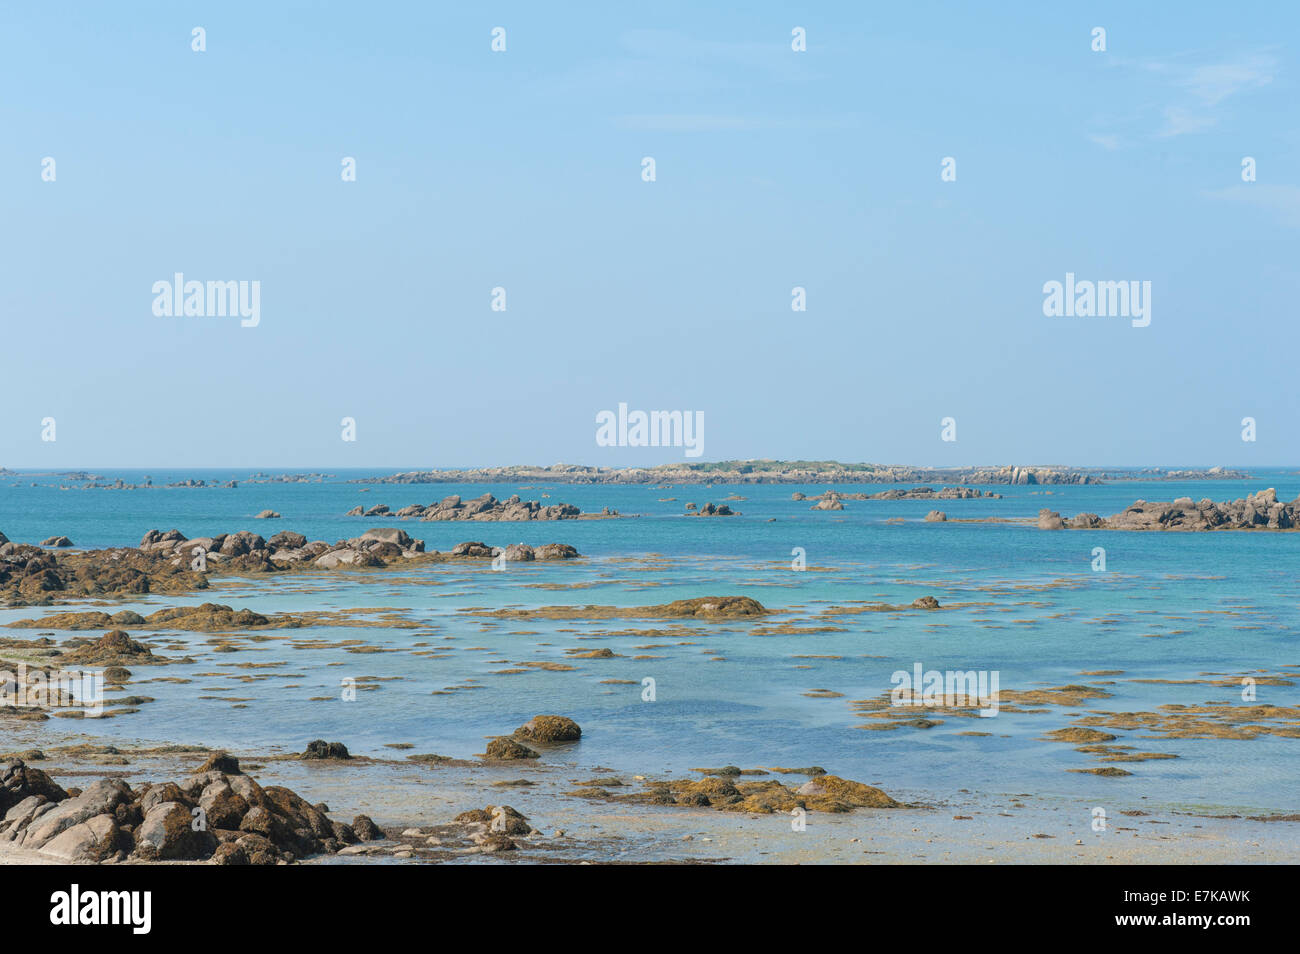 Bay near the Fort de Matignon at low tide at Grand-Île, Chausey Islands, Basse-Normandie, France - Stock Image